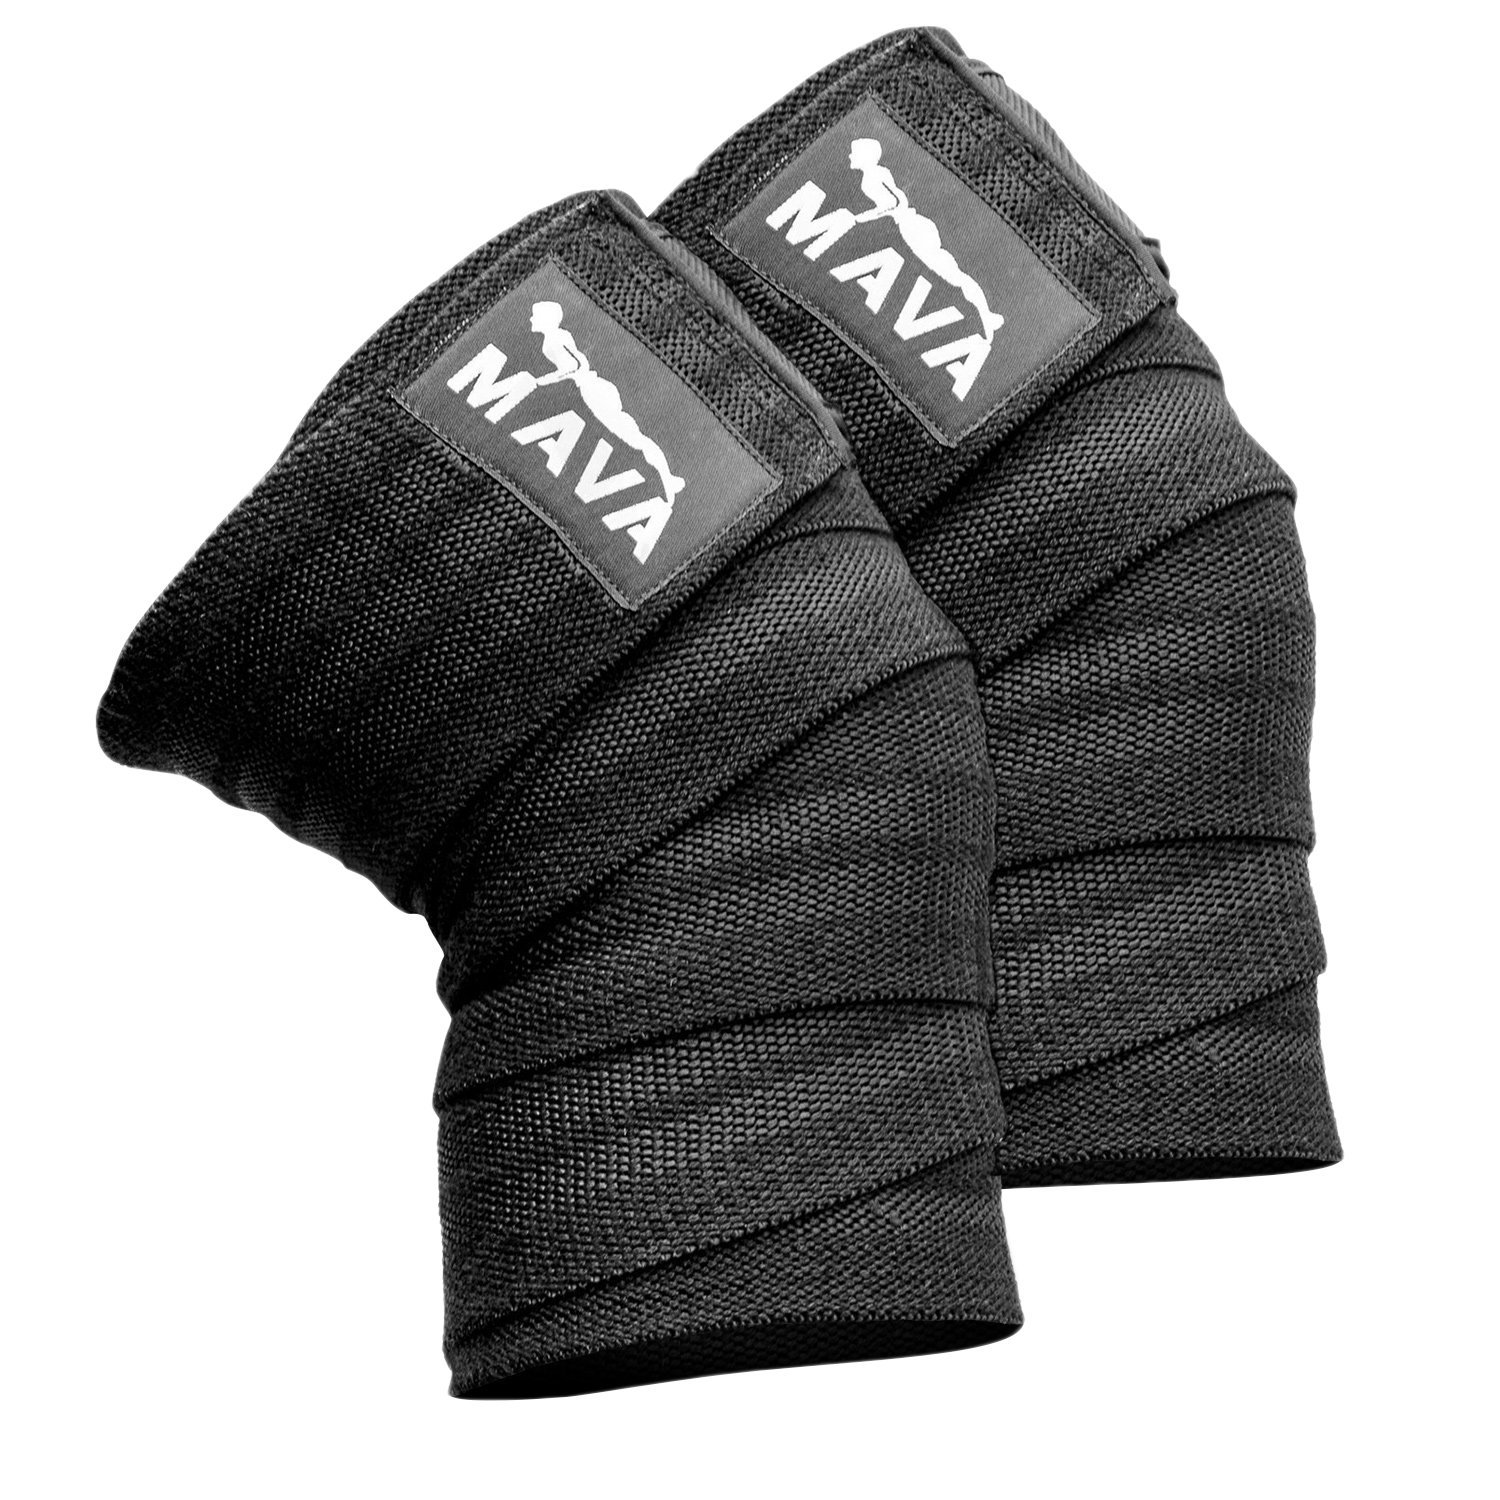 MAVA Sports Knee Wraps